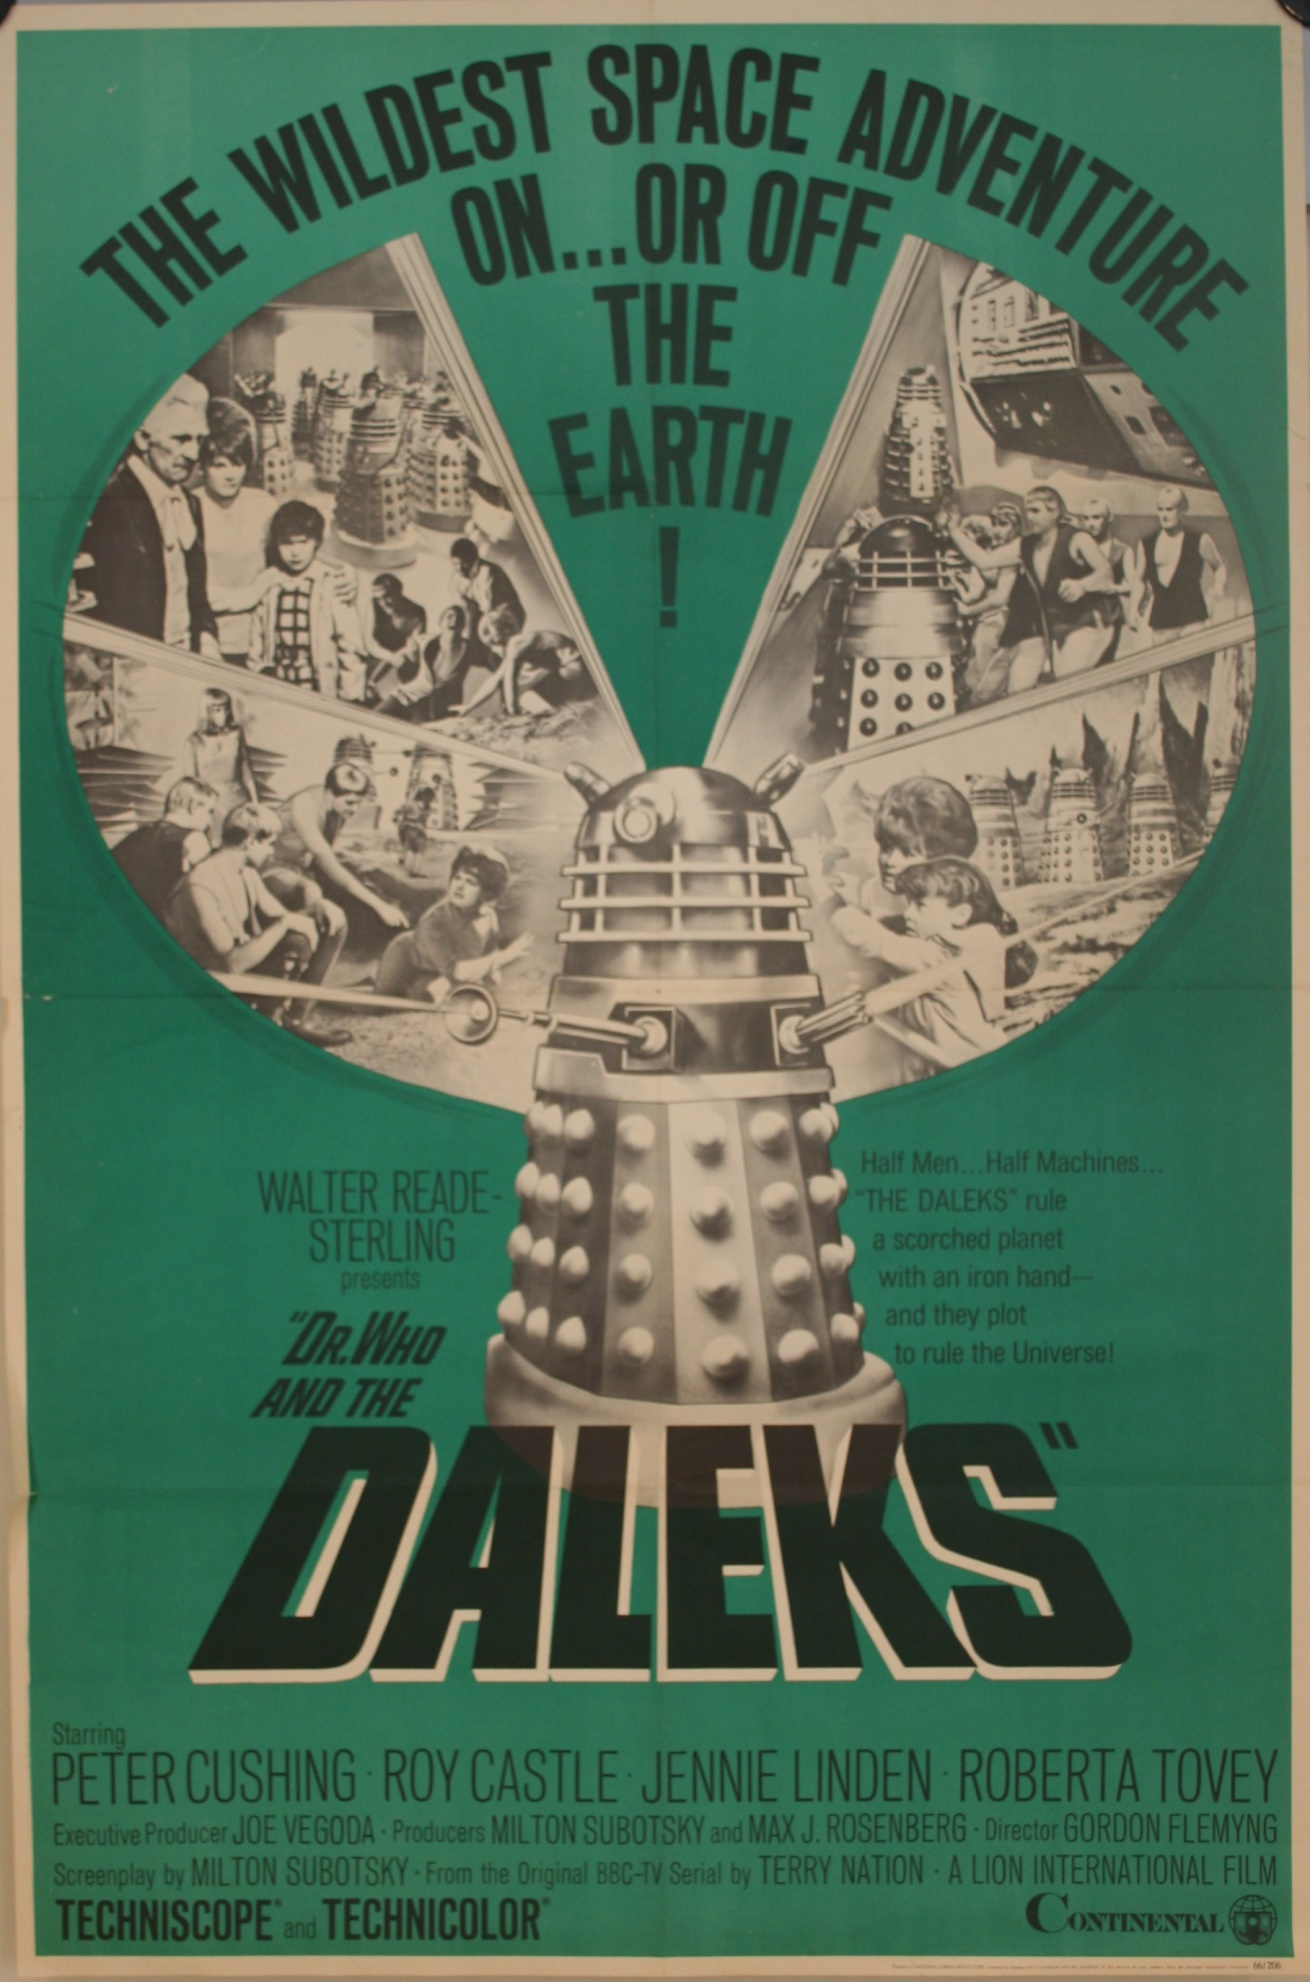 US One-Sheet Poster